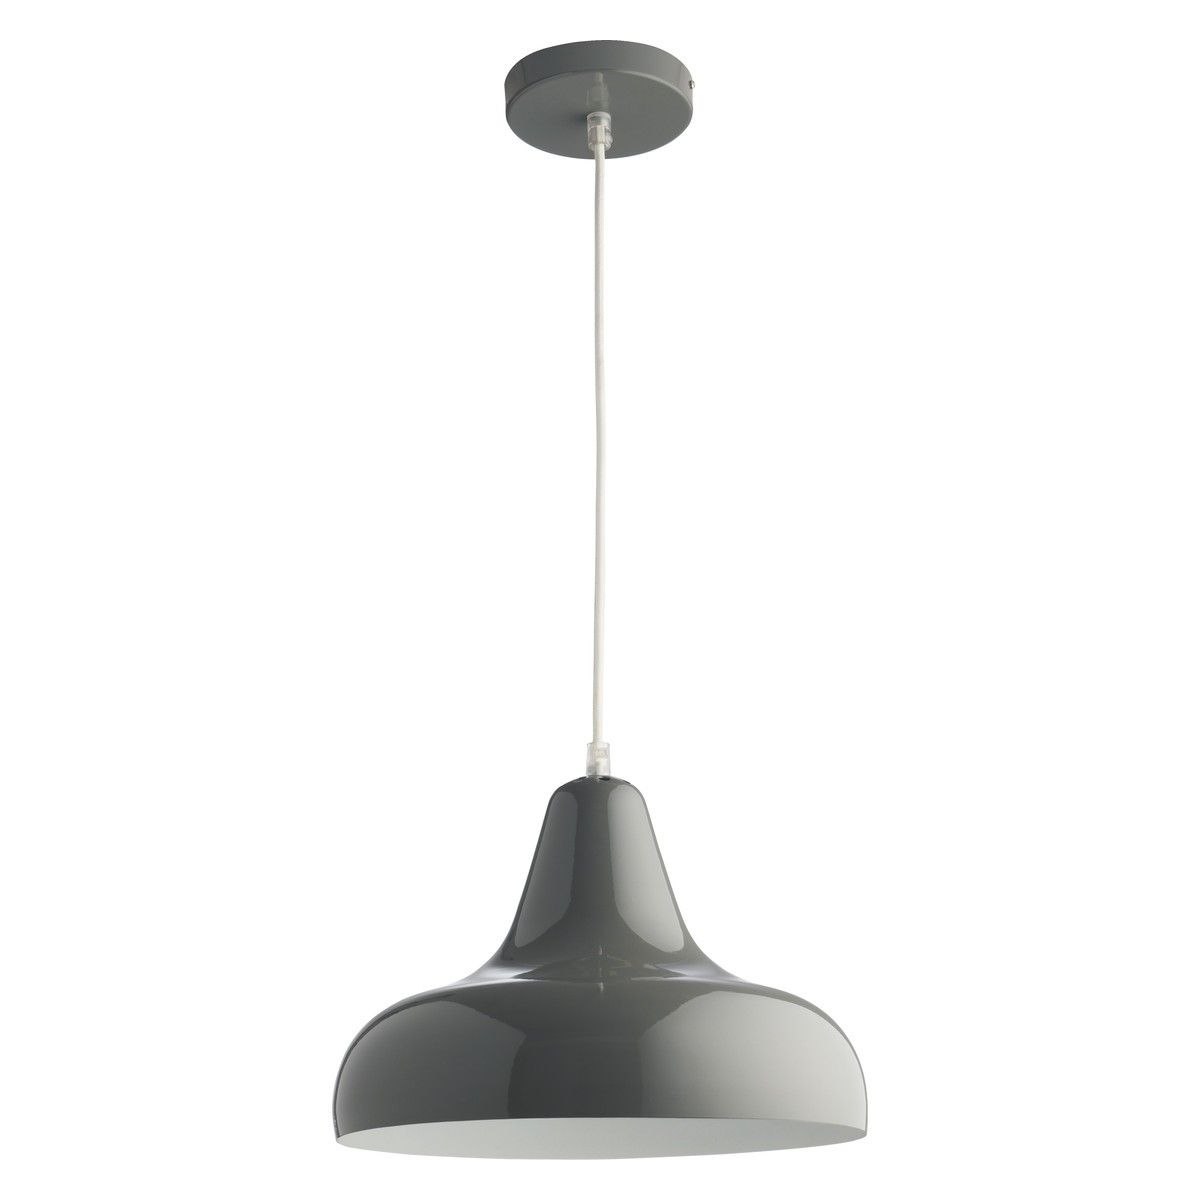 AERIAL Grey Metal Ceiling Light With White Interior